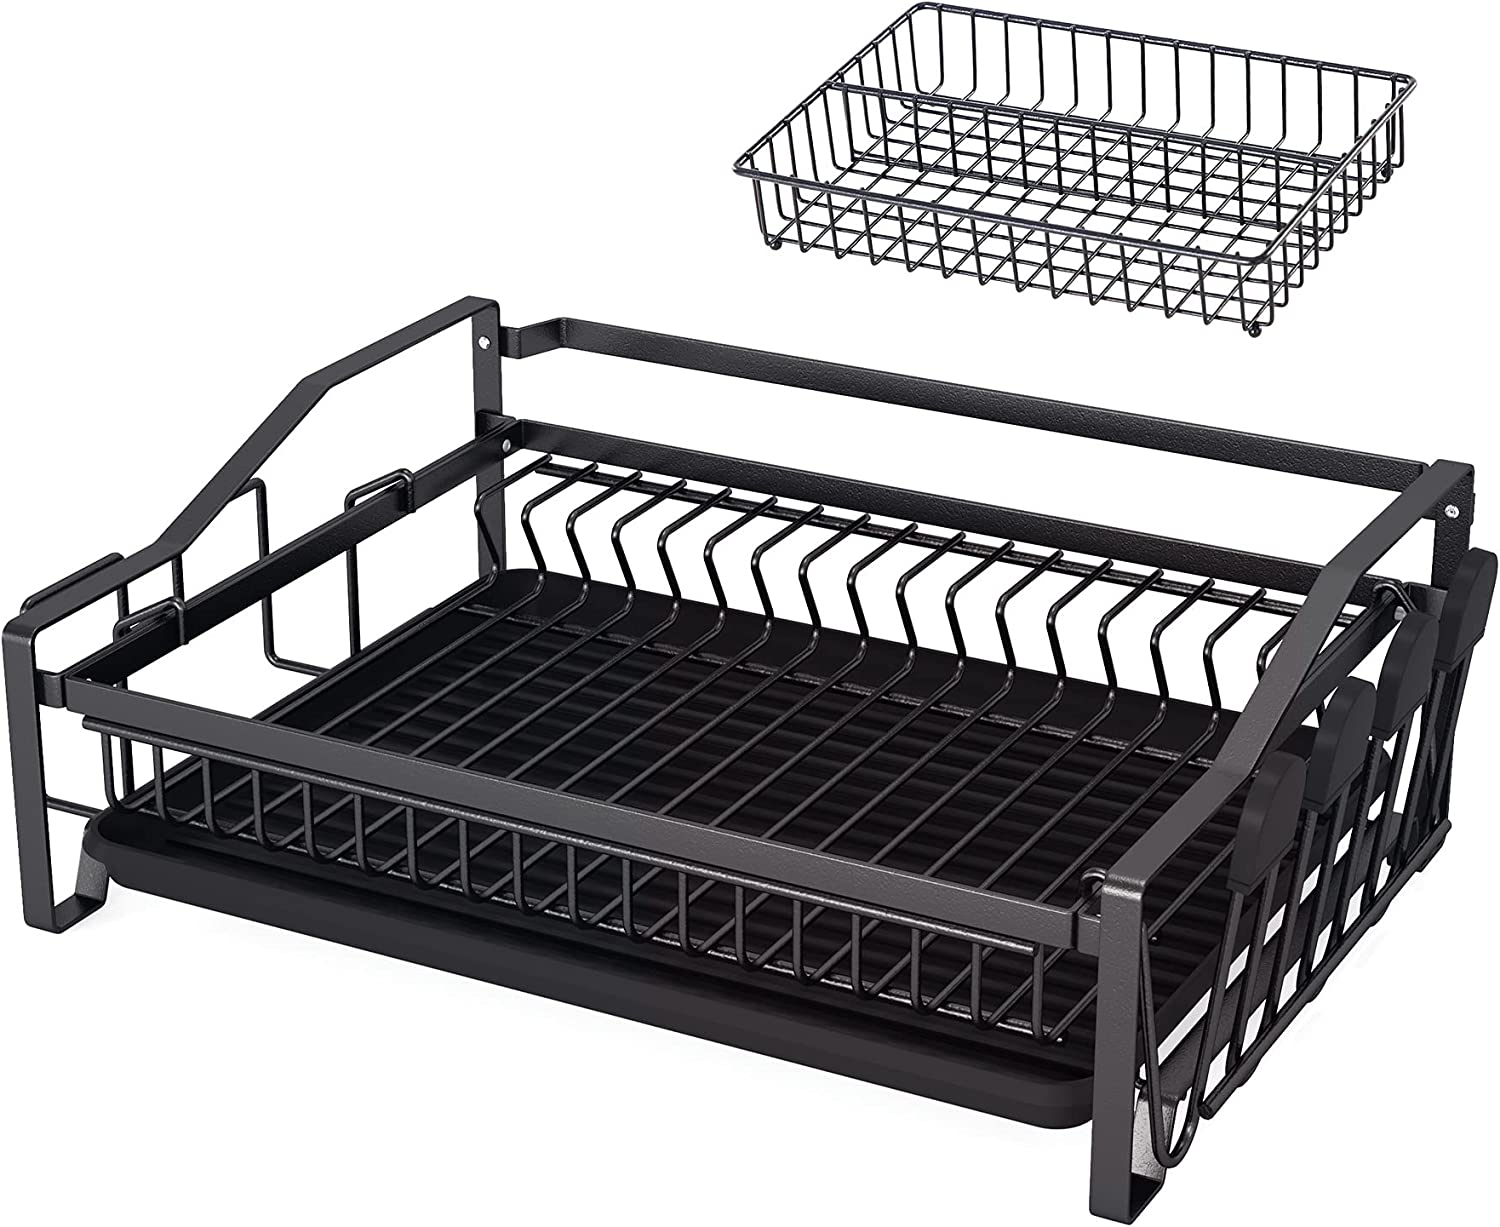 Dish Topics on TV Drying Rack 1Easylife Drainer Max 49% OFF Set with Cutlery Spice